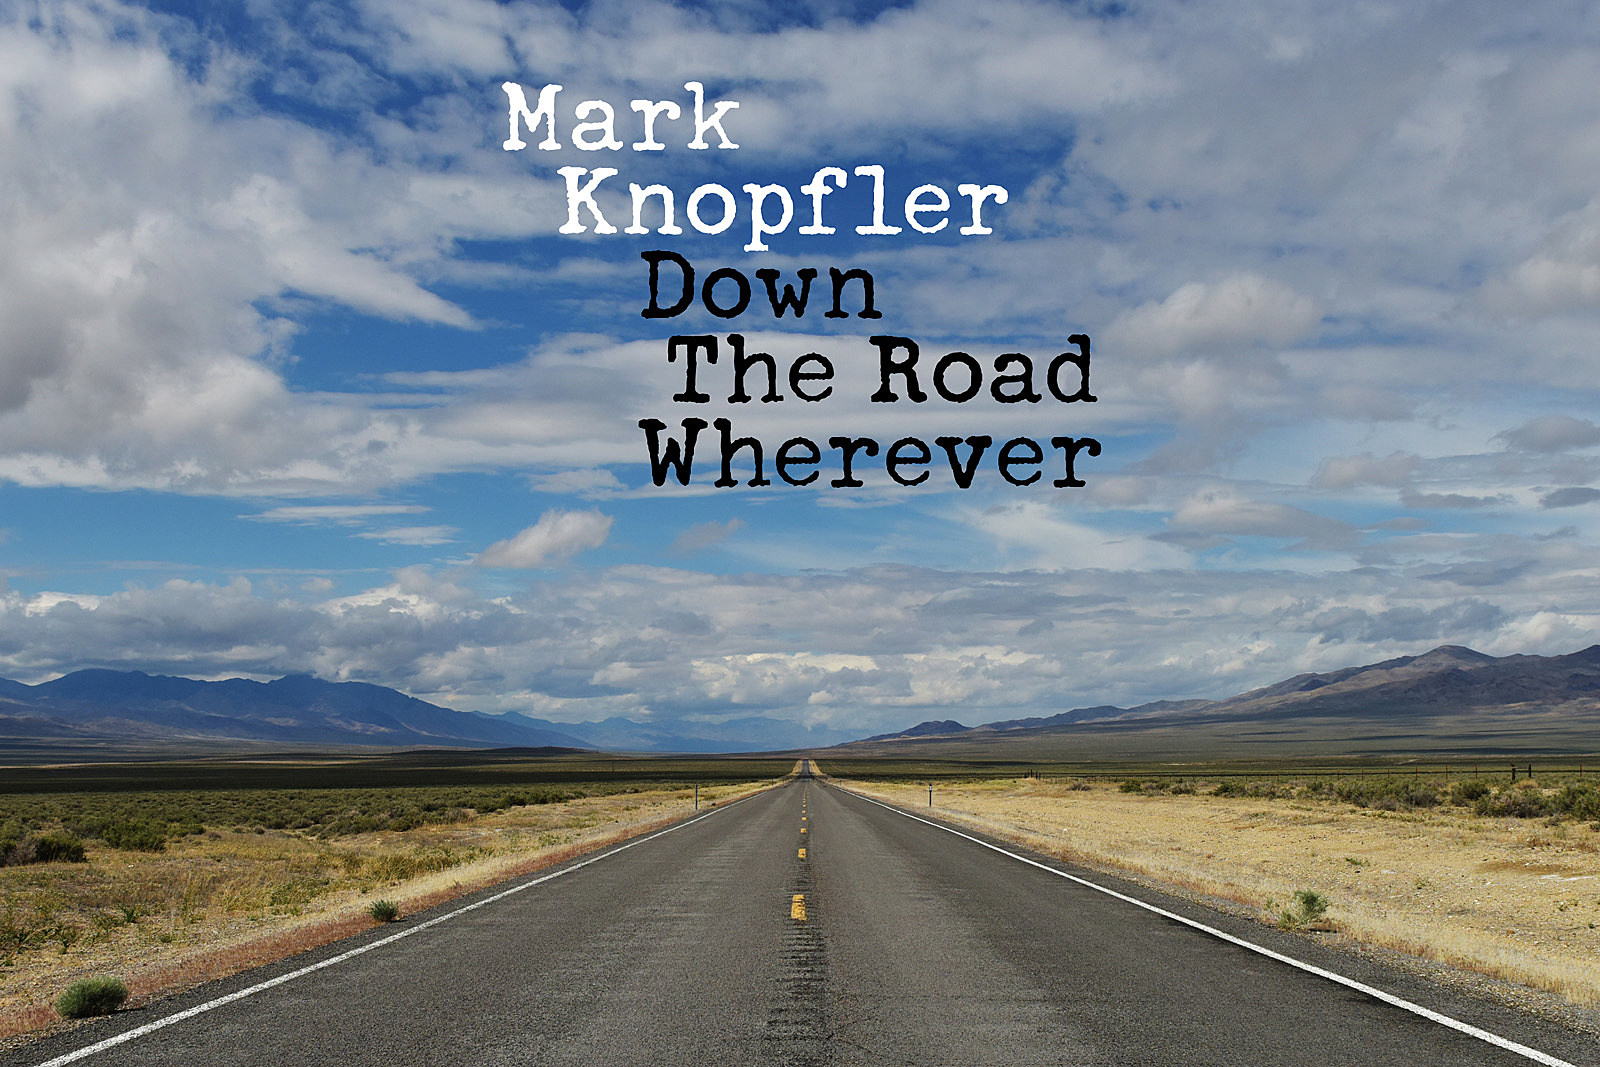 Top 10 Mark Knopfler Solo Songs